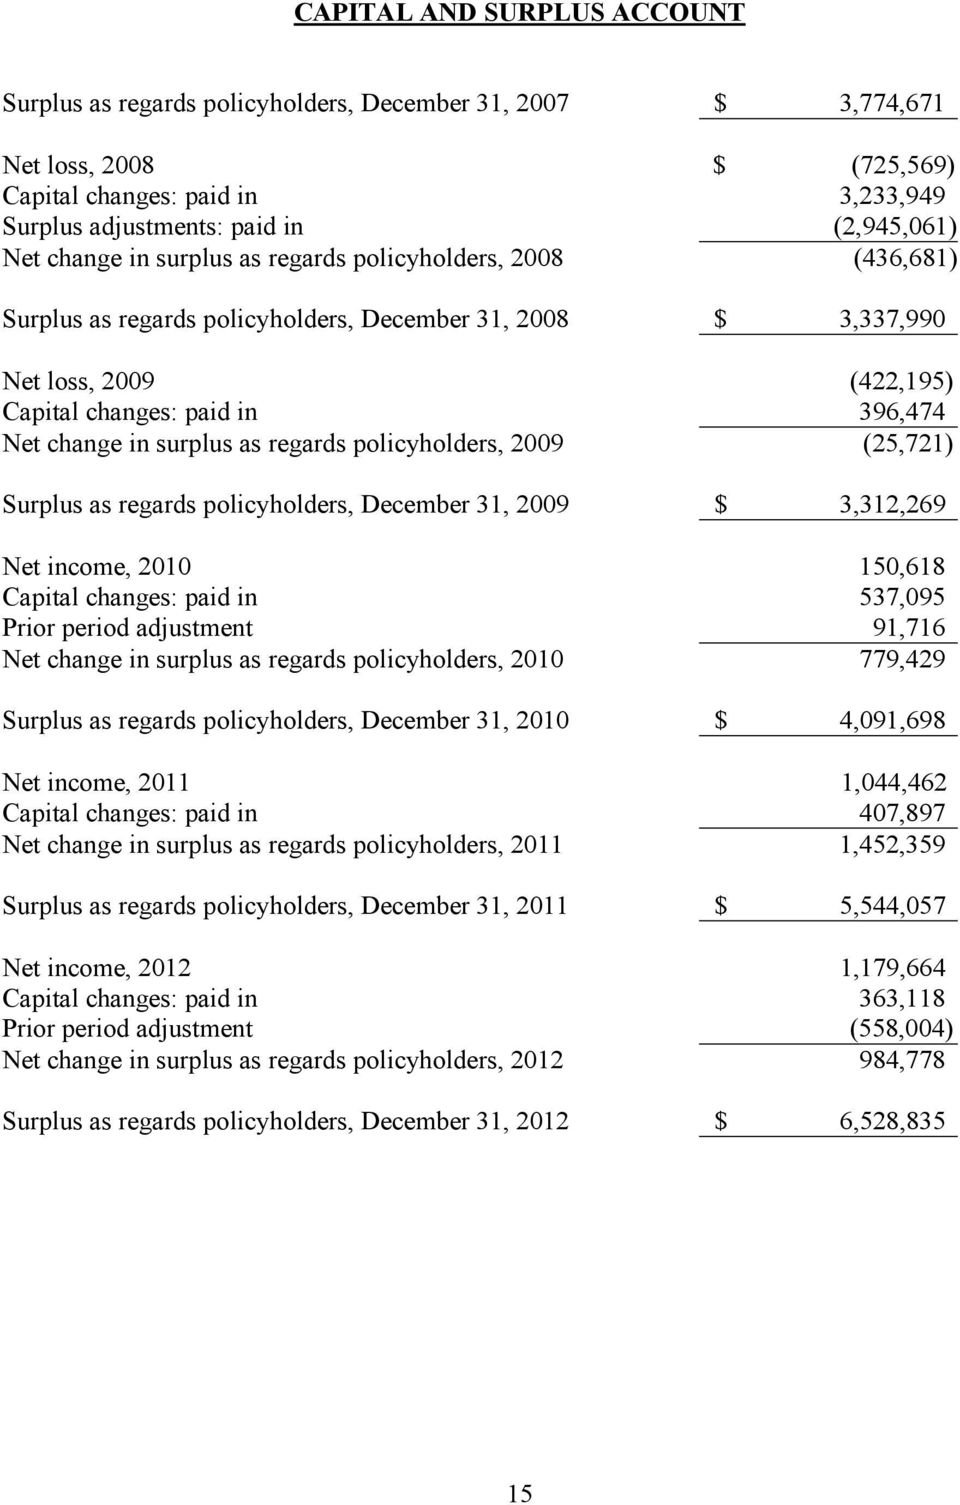 surplus as regards policyholders, 2009 (25,721) Surplus as regards policyholders, December 31, 2009 $ 3,312,269 Net income, 2010 150,618 Capital changes: paid in 537,095 Prior period adjustment